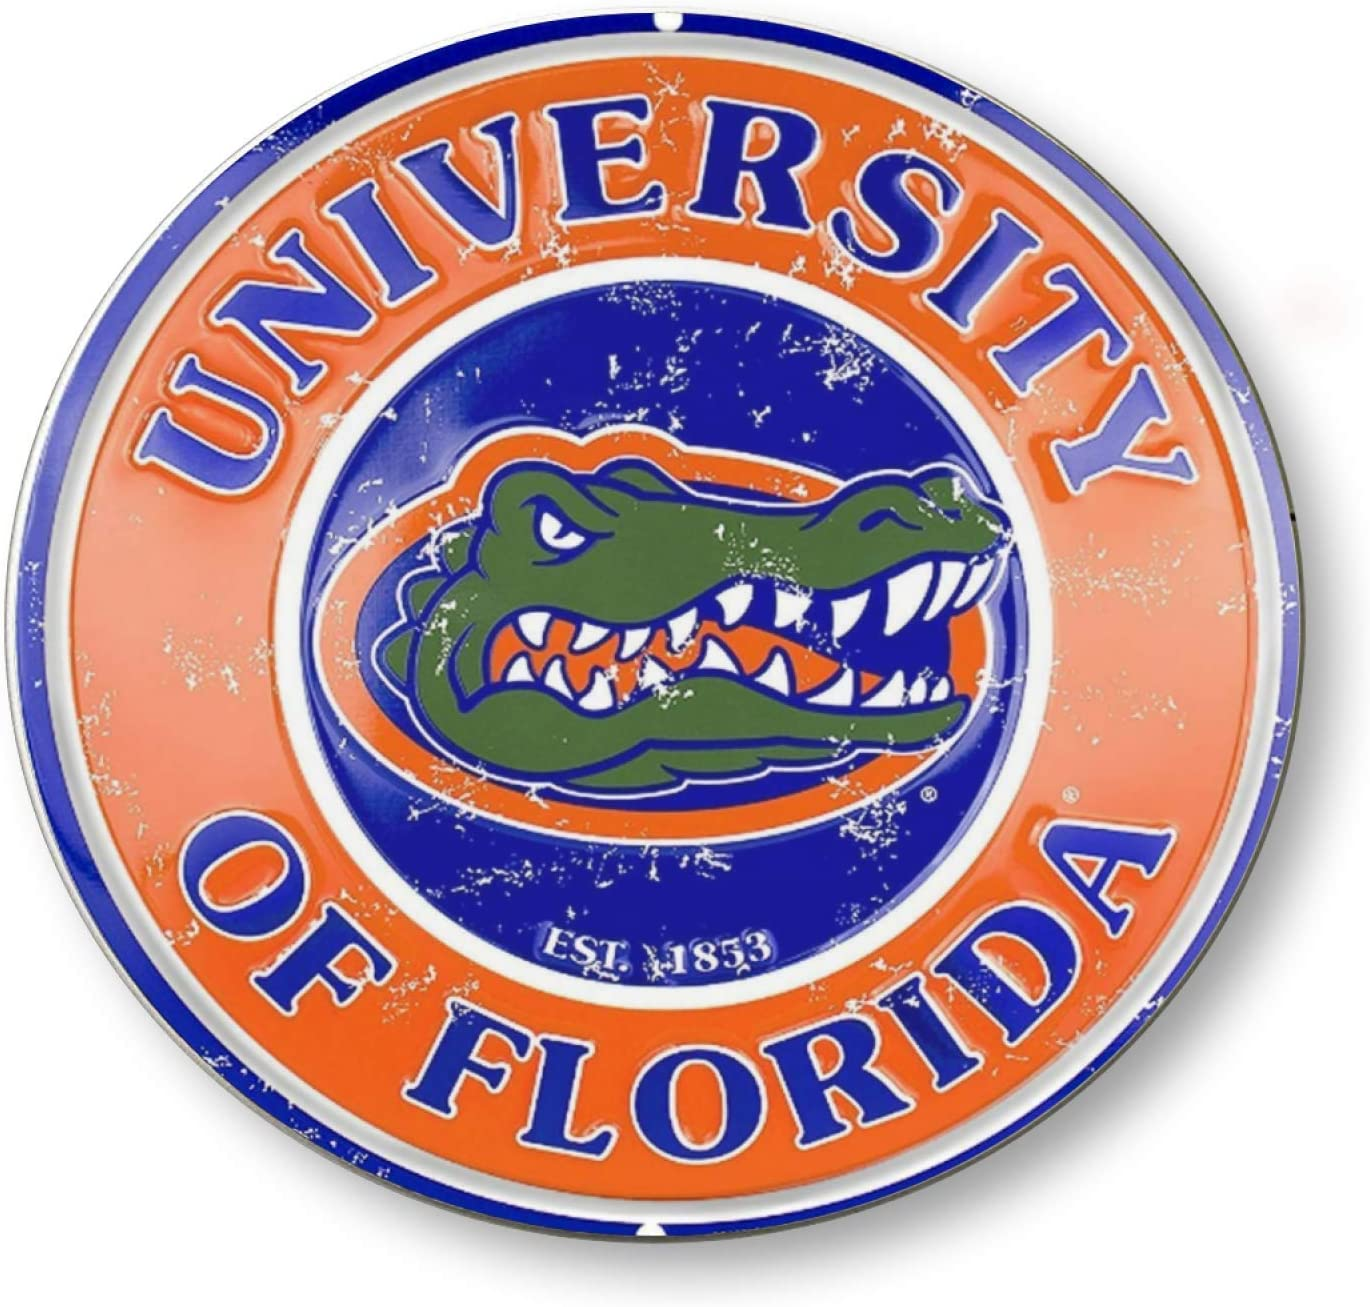 Florida Gators Vintage Style Concave Round Tin Sign, Retro Metal Round Tin Signs Decor Wall Art Posters Gifts for Door Plaque Home Bars Clubs Cafes, 12X12 Inches